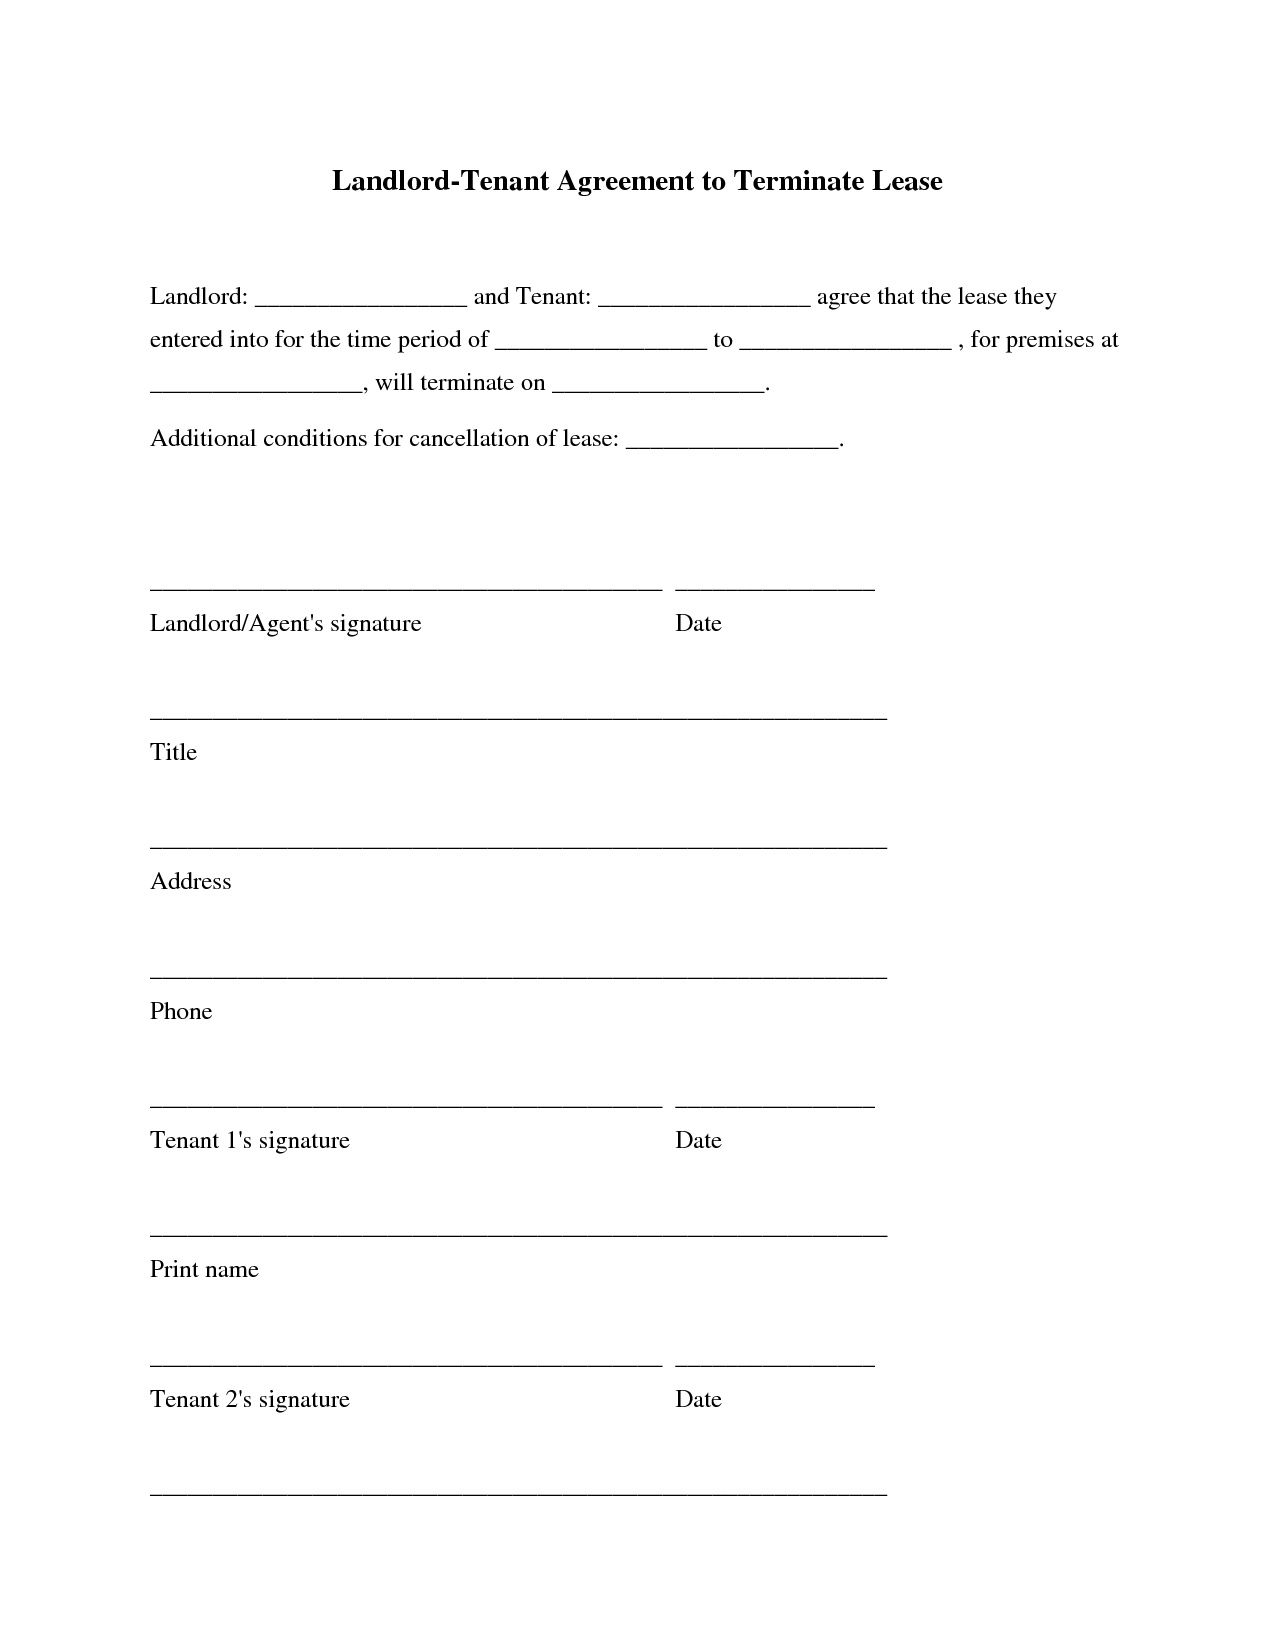 Best S Of Landlord Tenant Agreement Form Landlord Best Free Landlord Lease Agreement Template Hu F Free Land Real Estate Forms Being A Landlord Legal Forms Tenant contact information form template